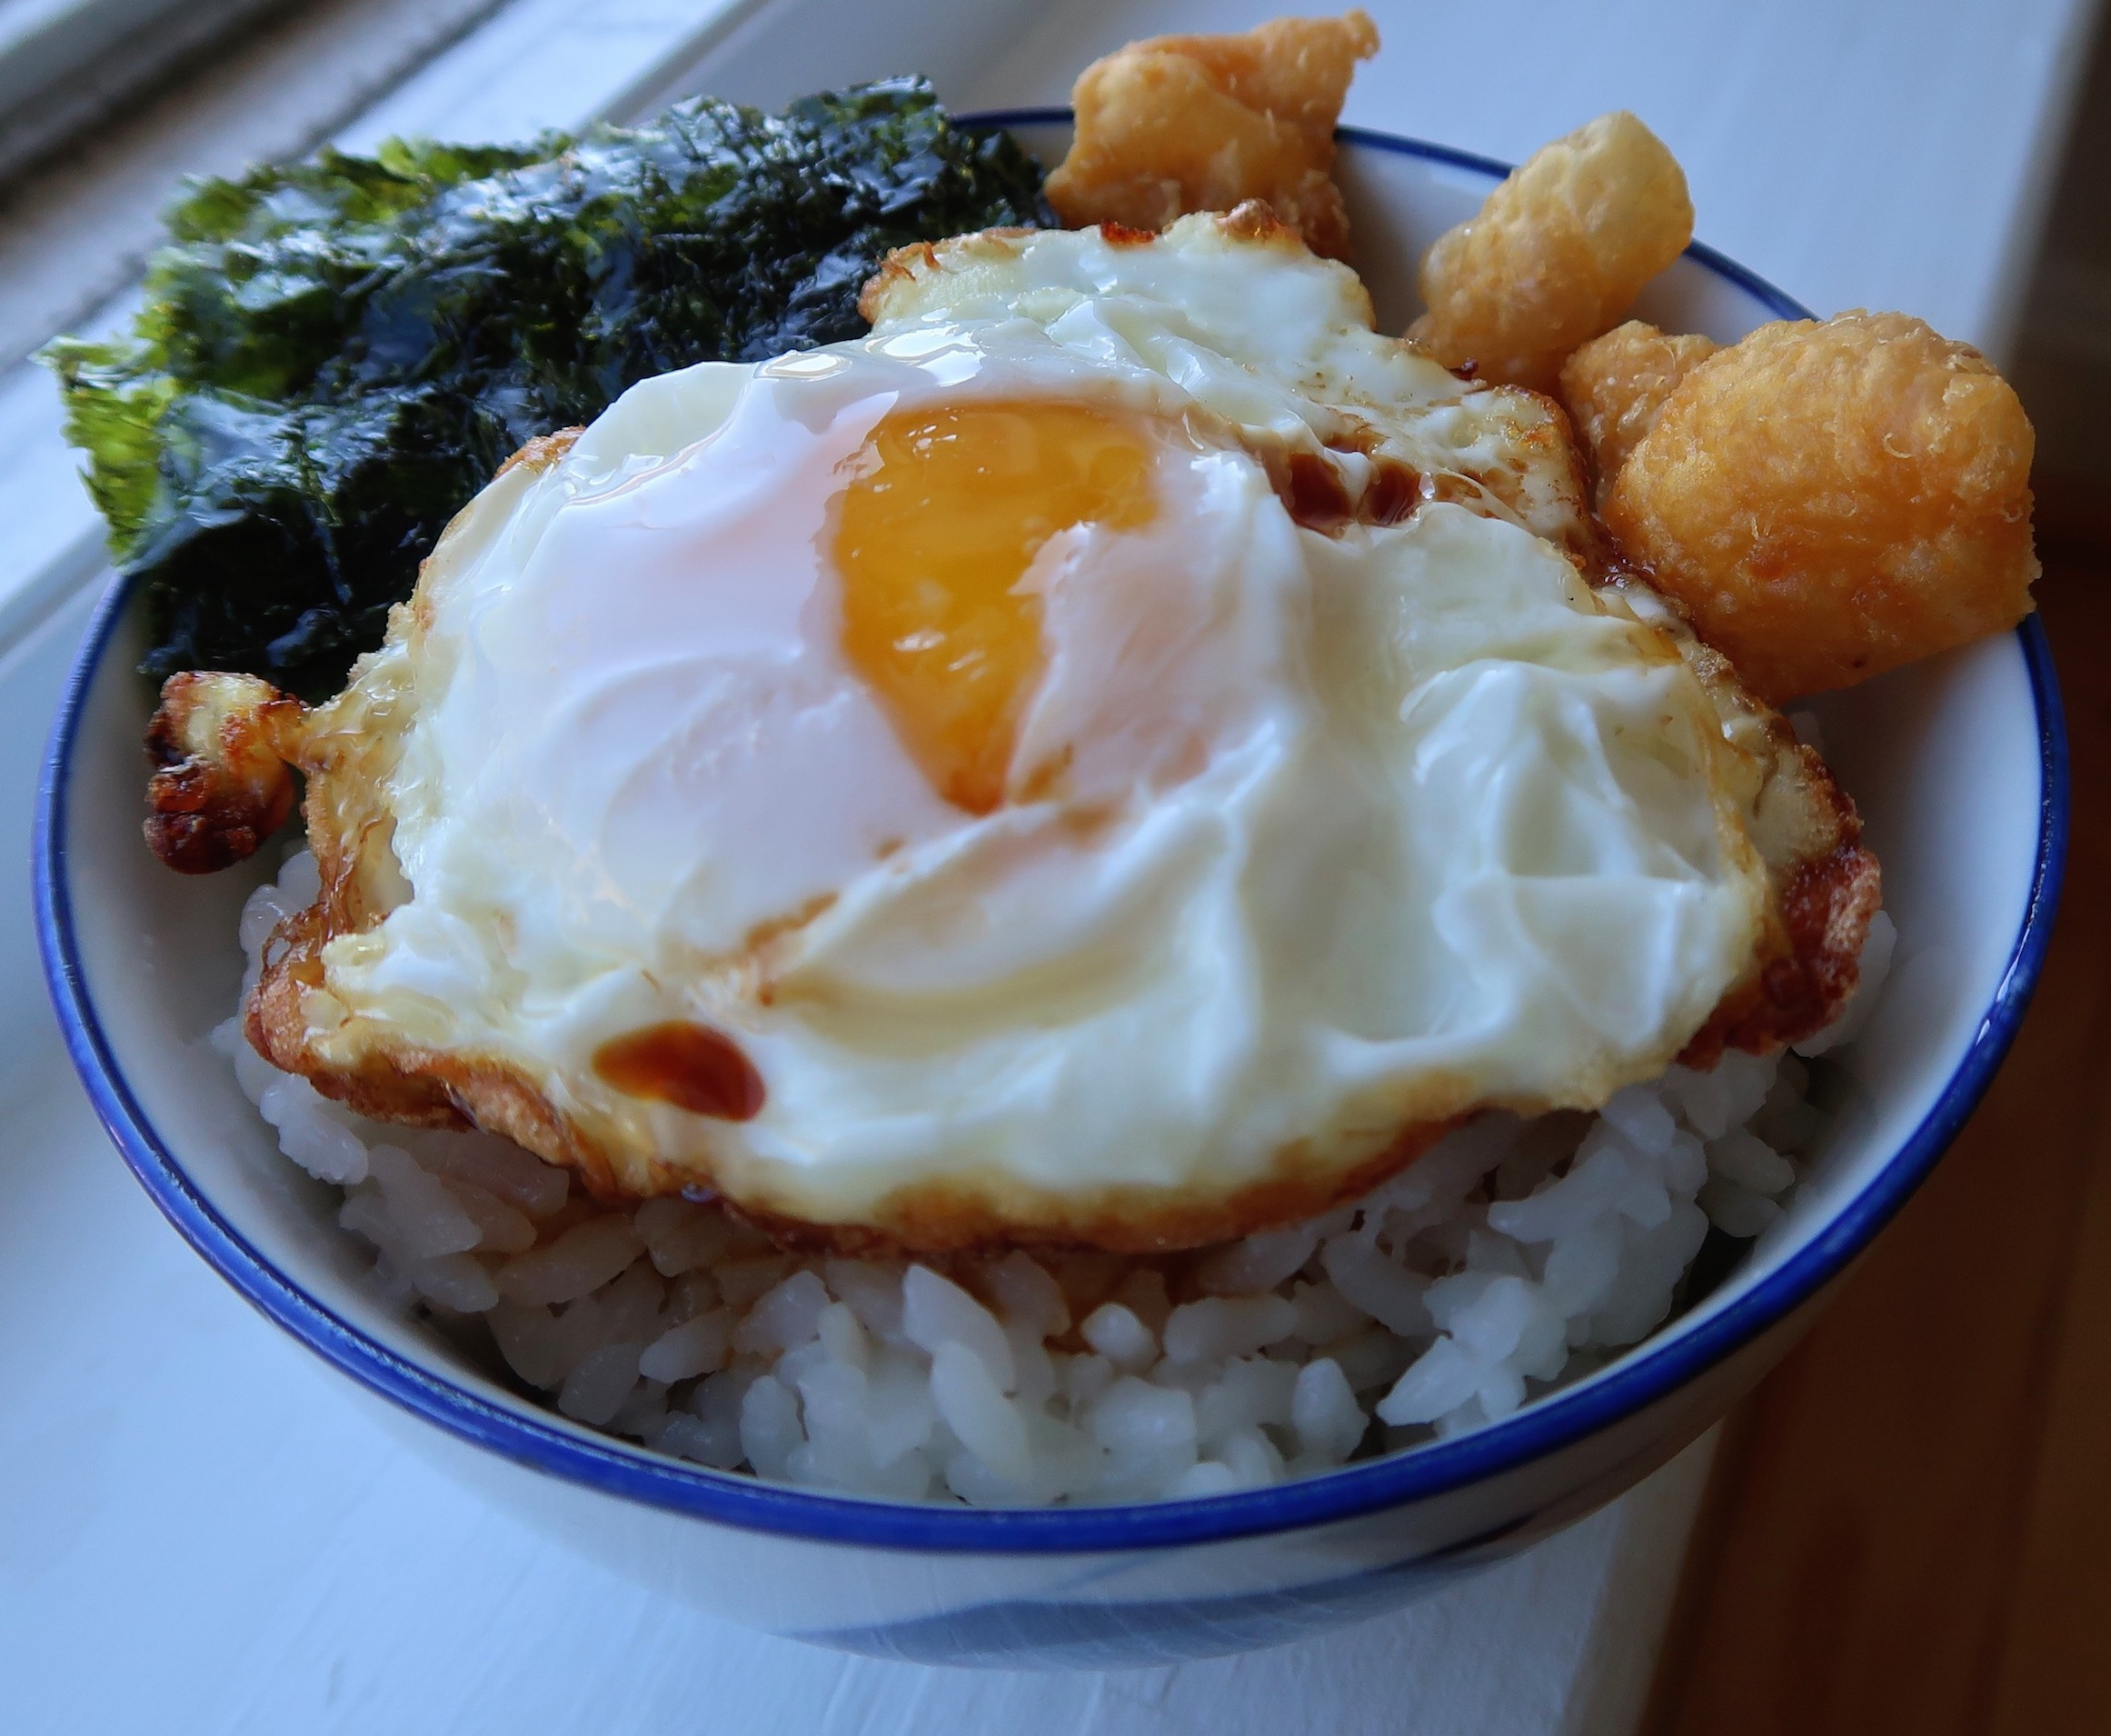 Rice drizzled with chicken drippings, Haku Smoked Shoyu before being topped with fried egg, fried chicken skin, and roasted seaweed with sesame oil